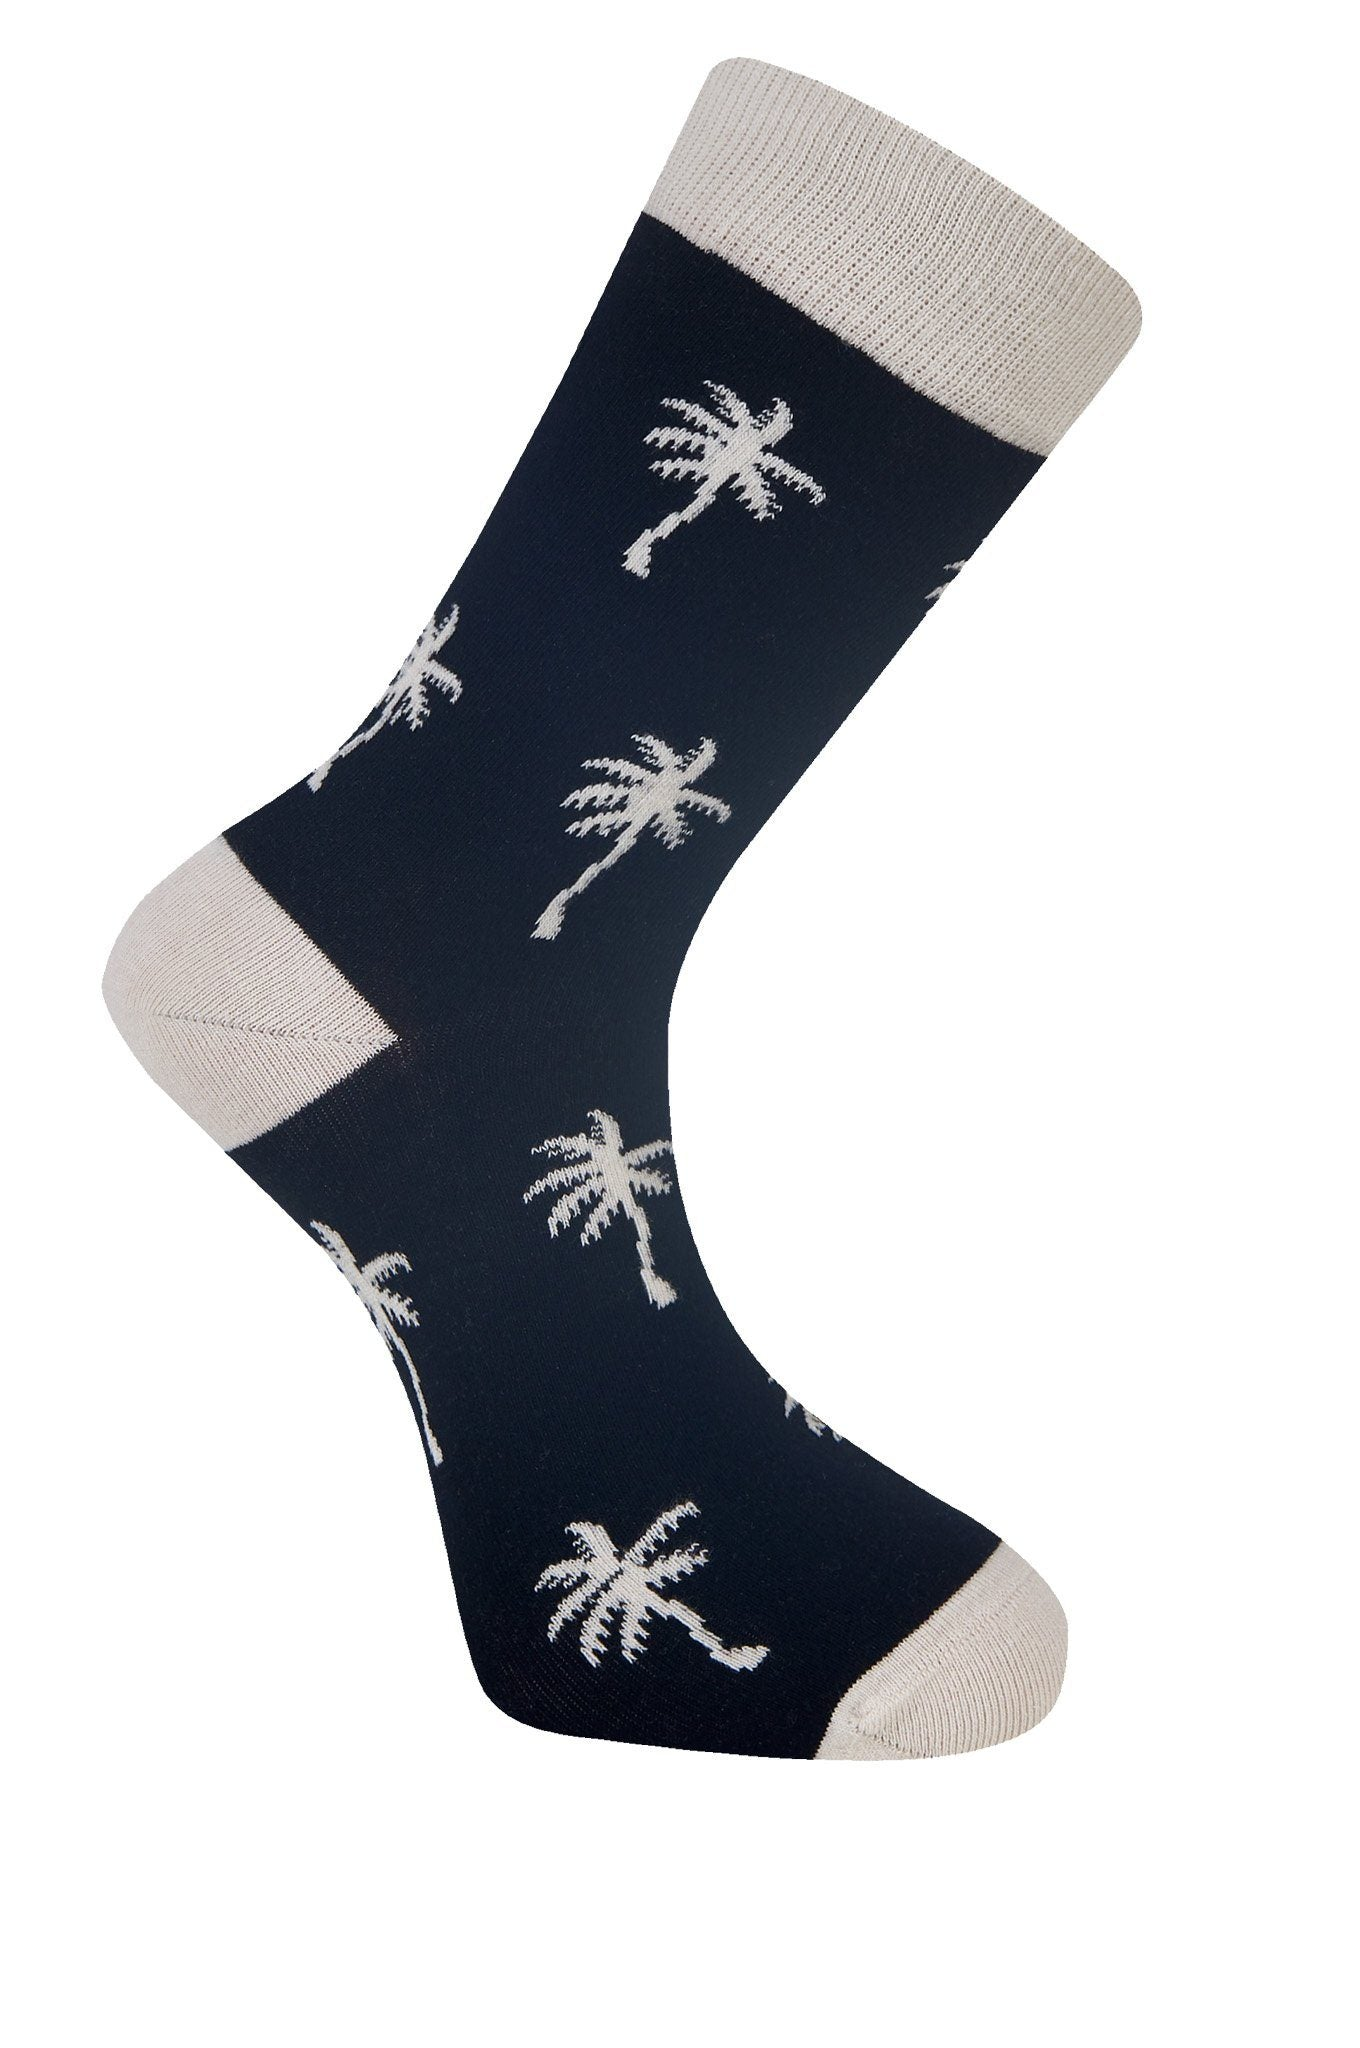 PALM TREE Black Organic Cotton Socks - Komodo Fashion